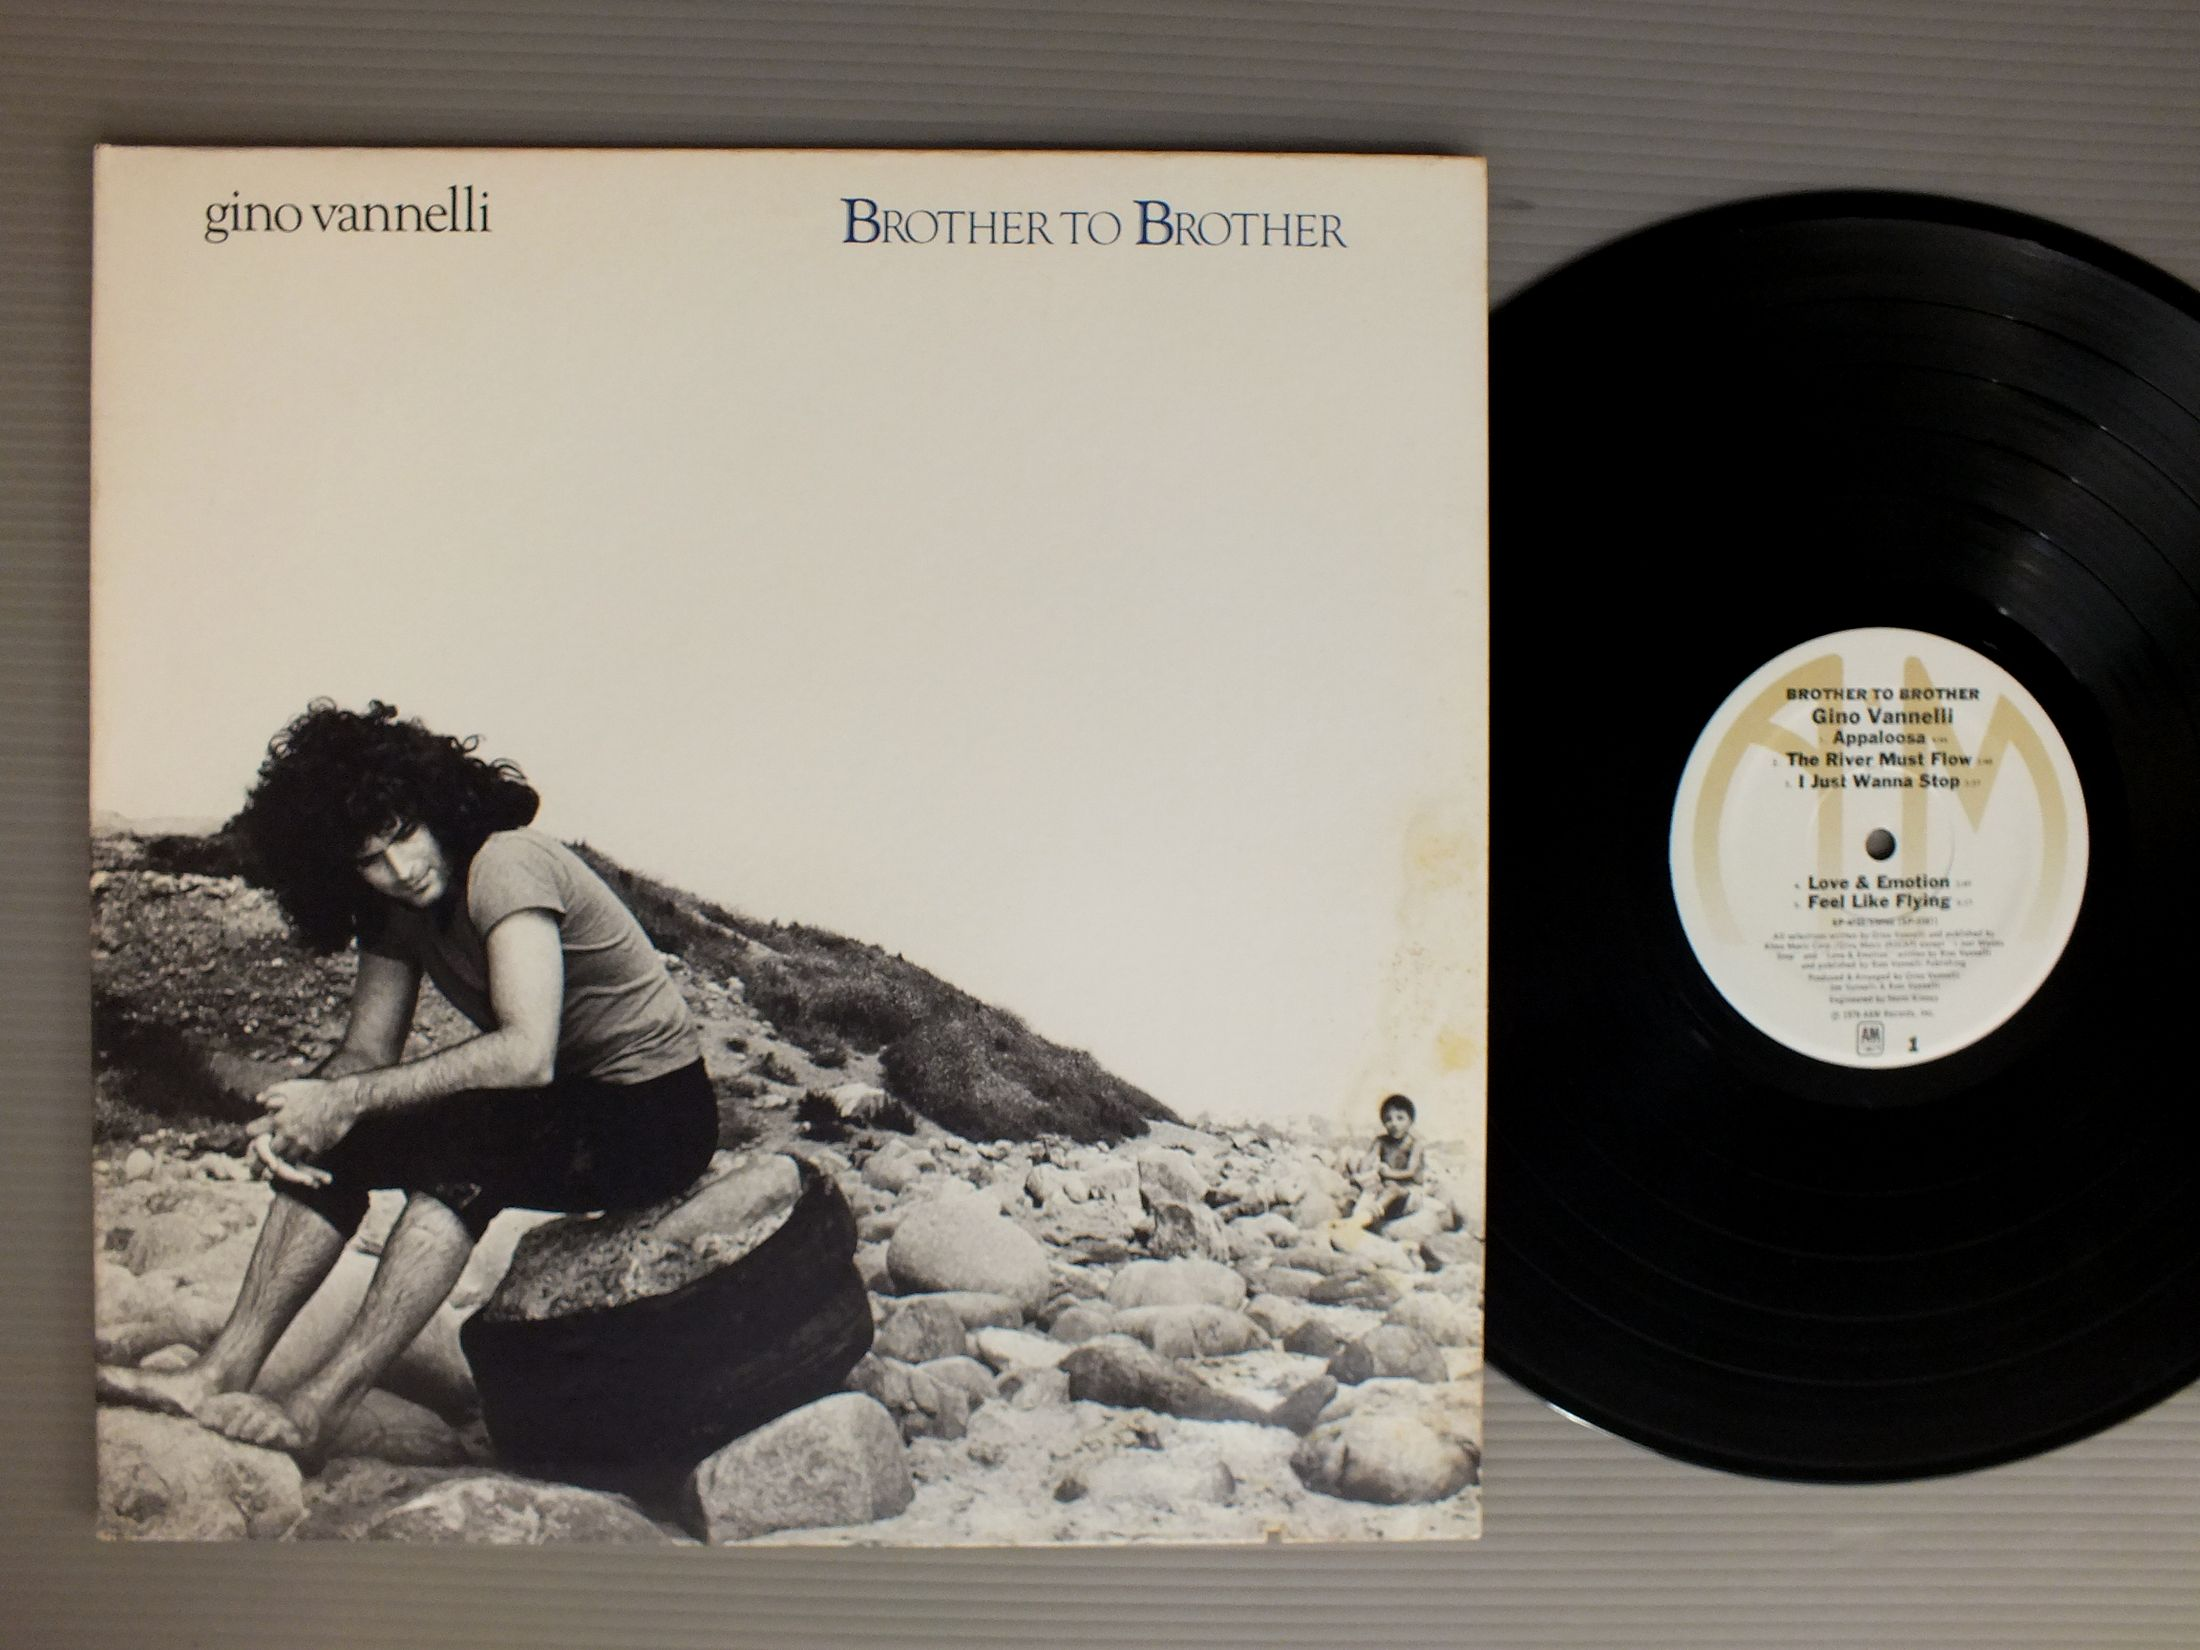 GINO VANNELLI - BROTHER TO BROTHER - 33T